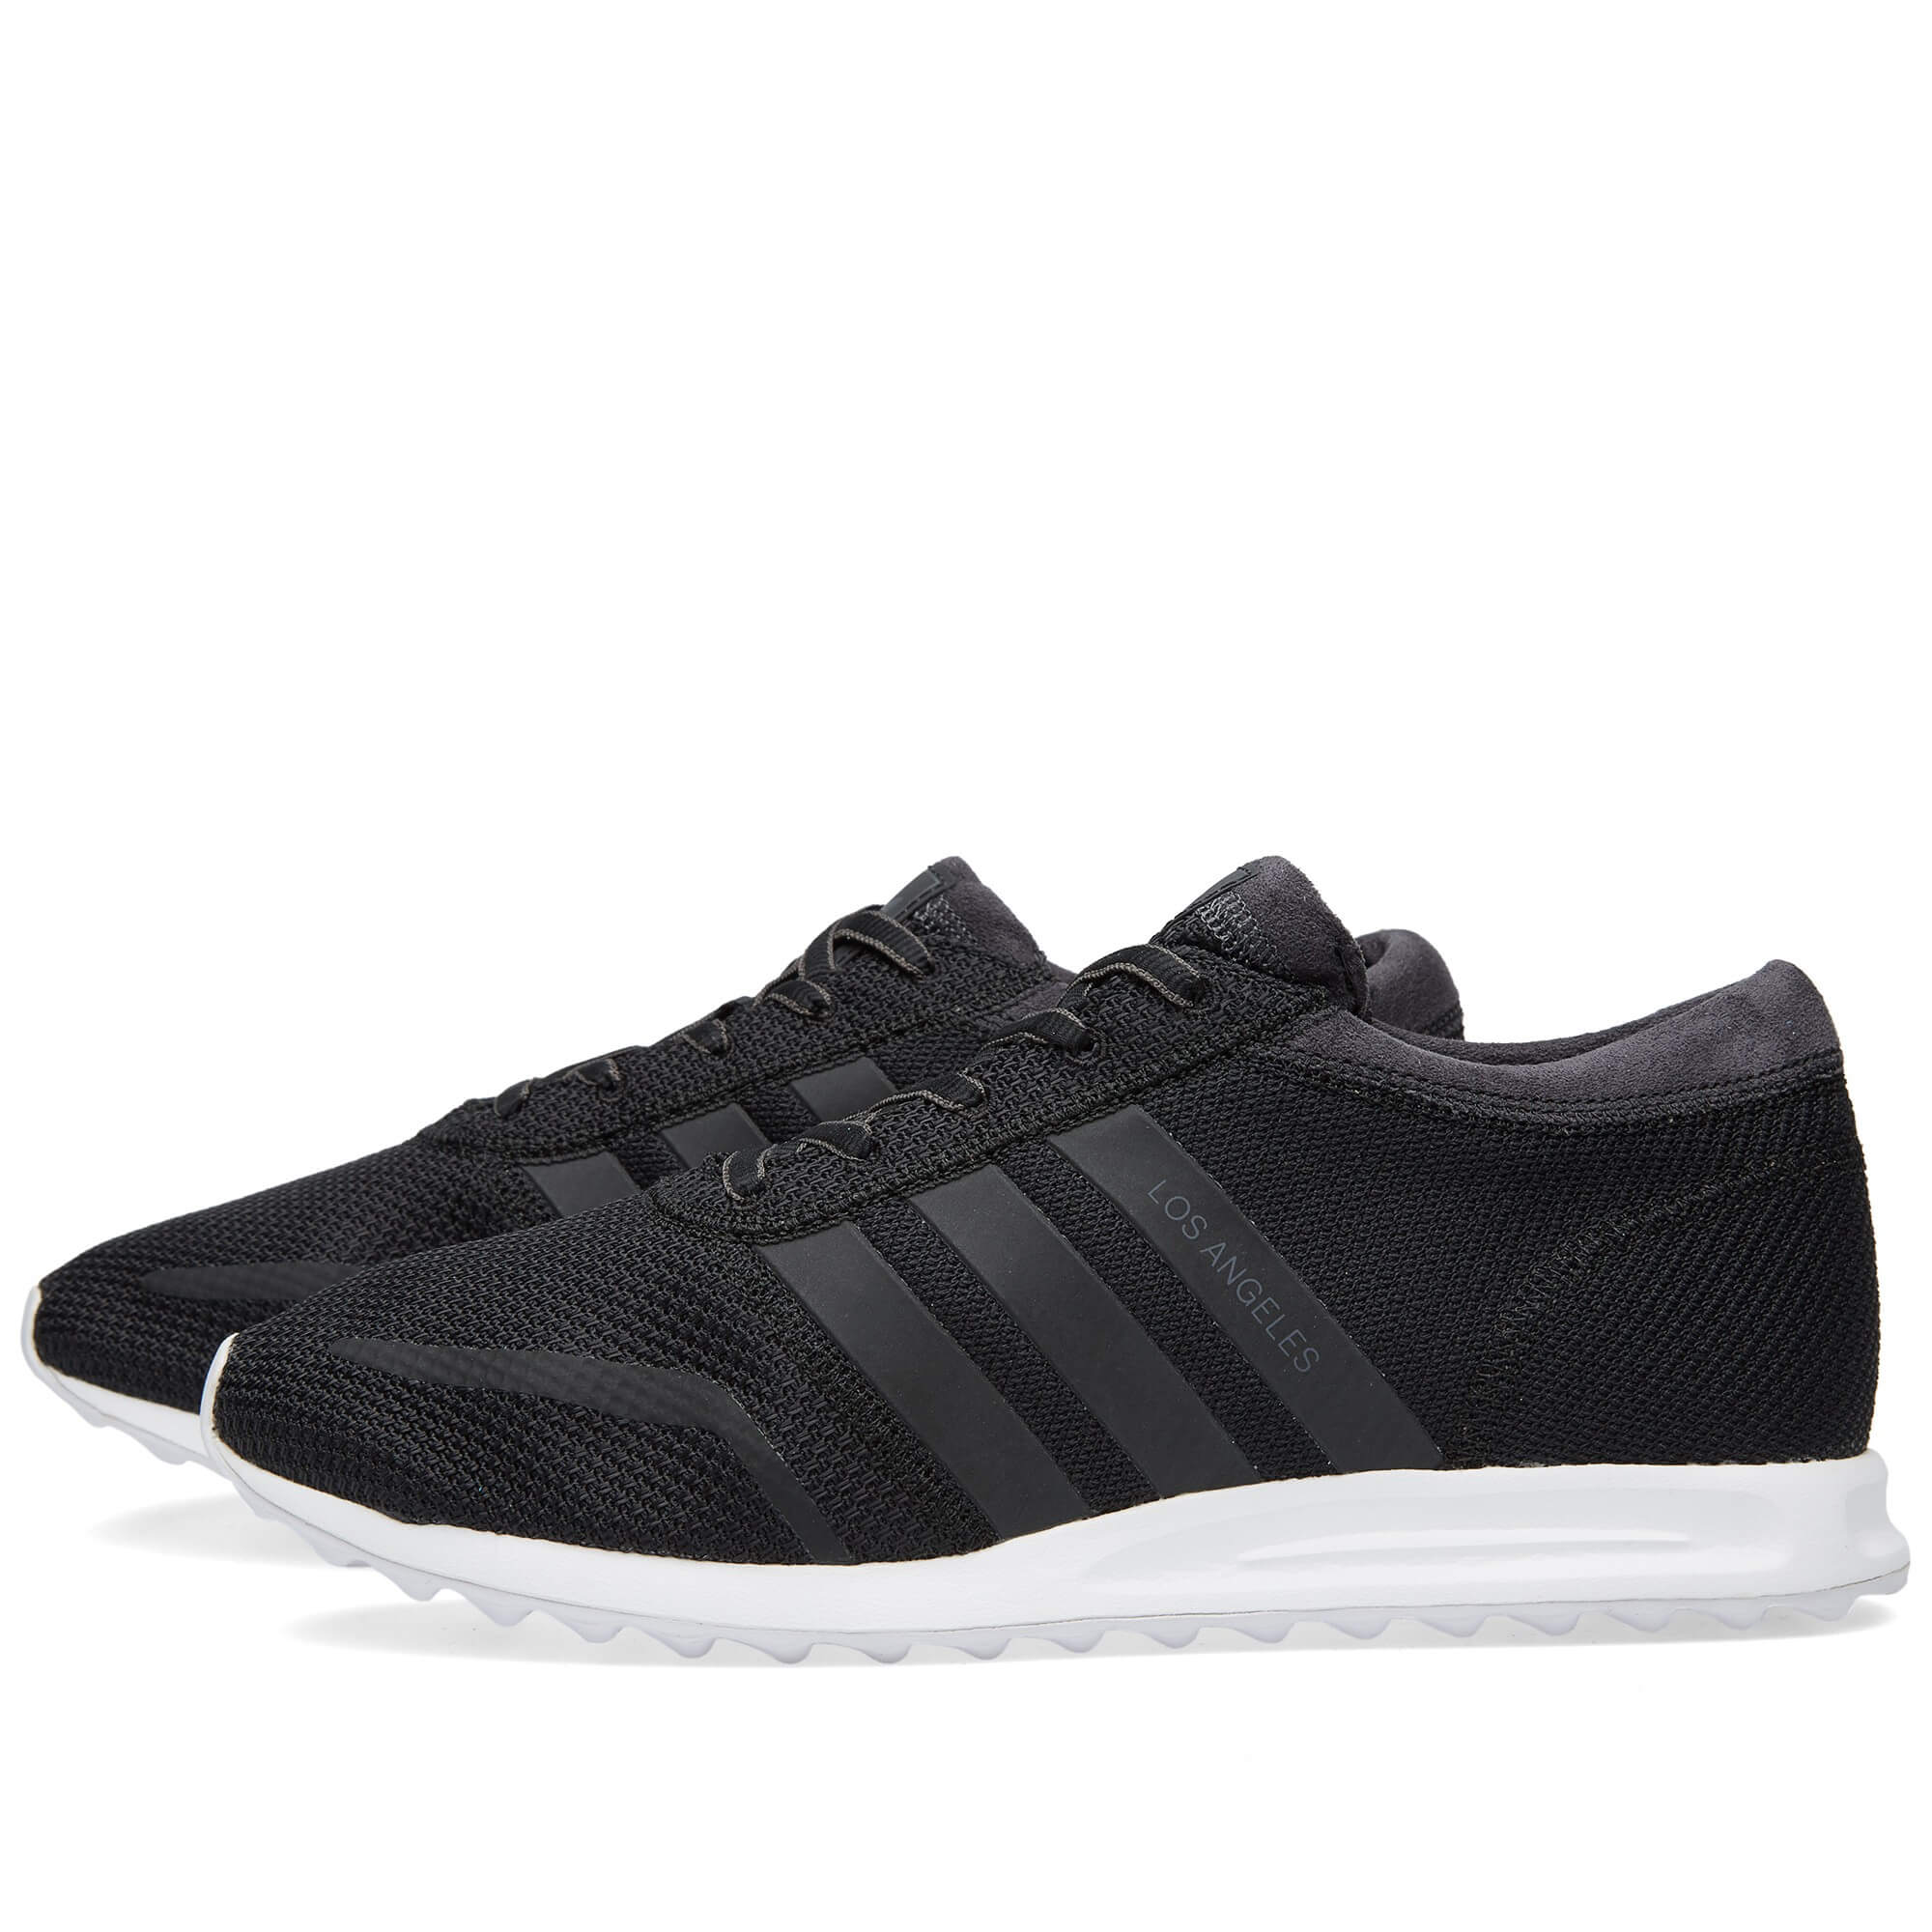 Favorite Adidas Los Angeles Shoes Black White | Adidas